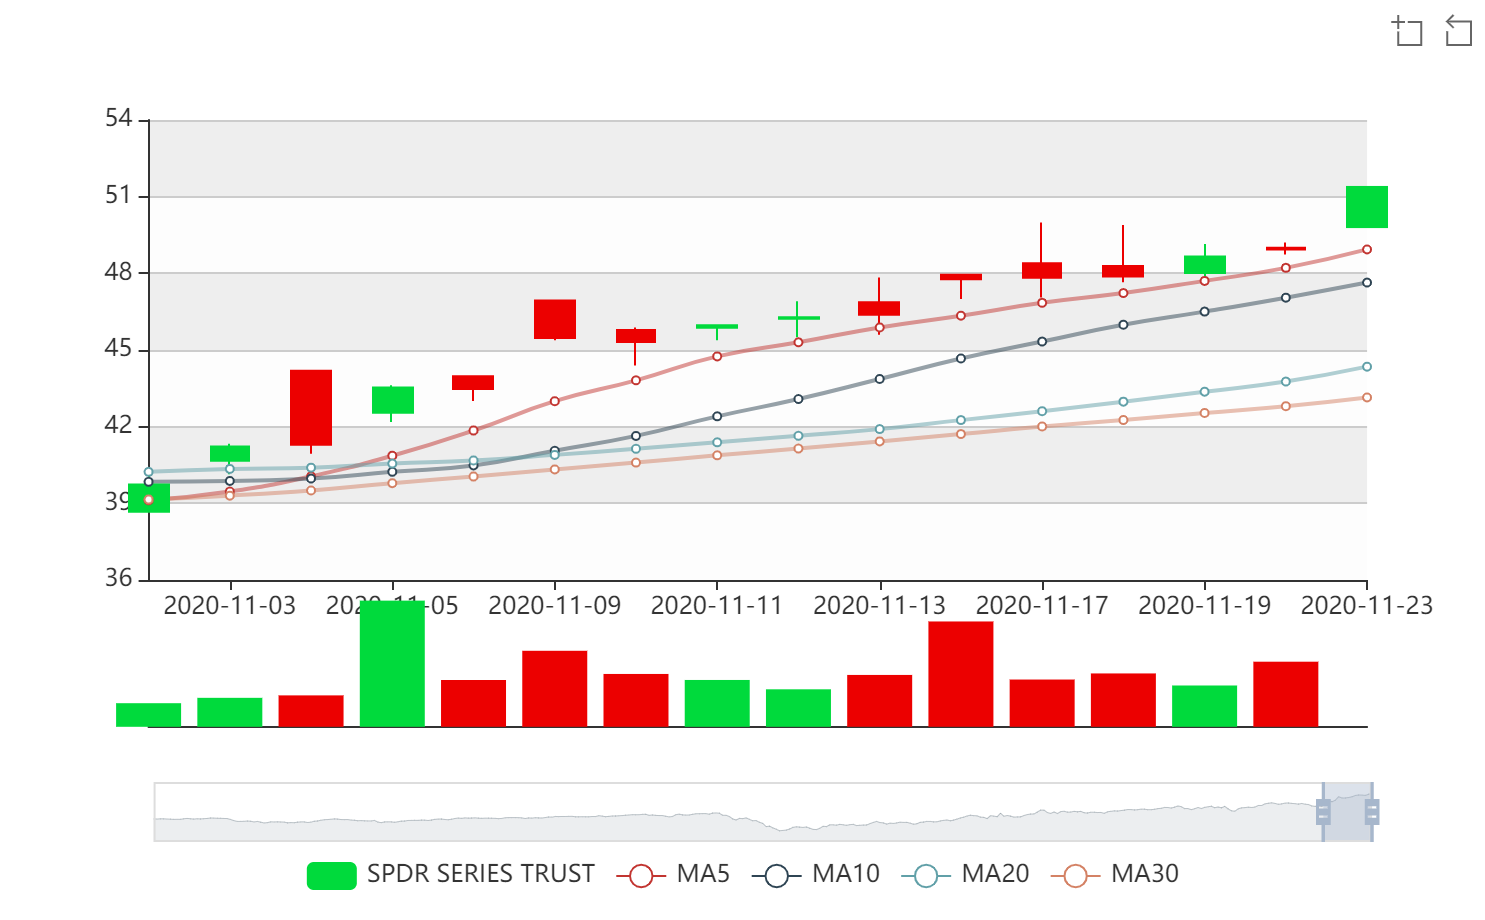 A chart showing the SPDR S&P Smart Mobility ETF (HAIL).